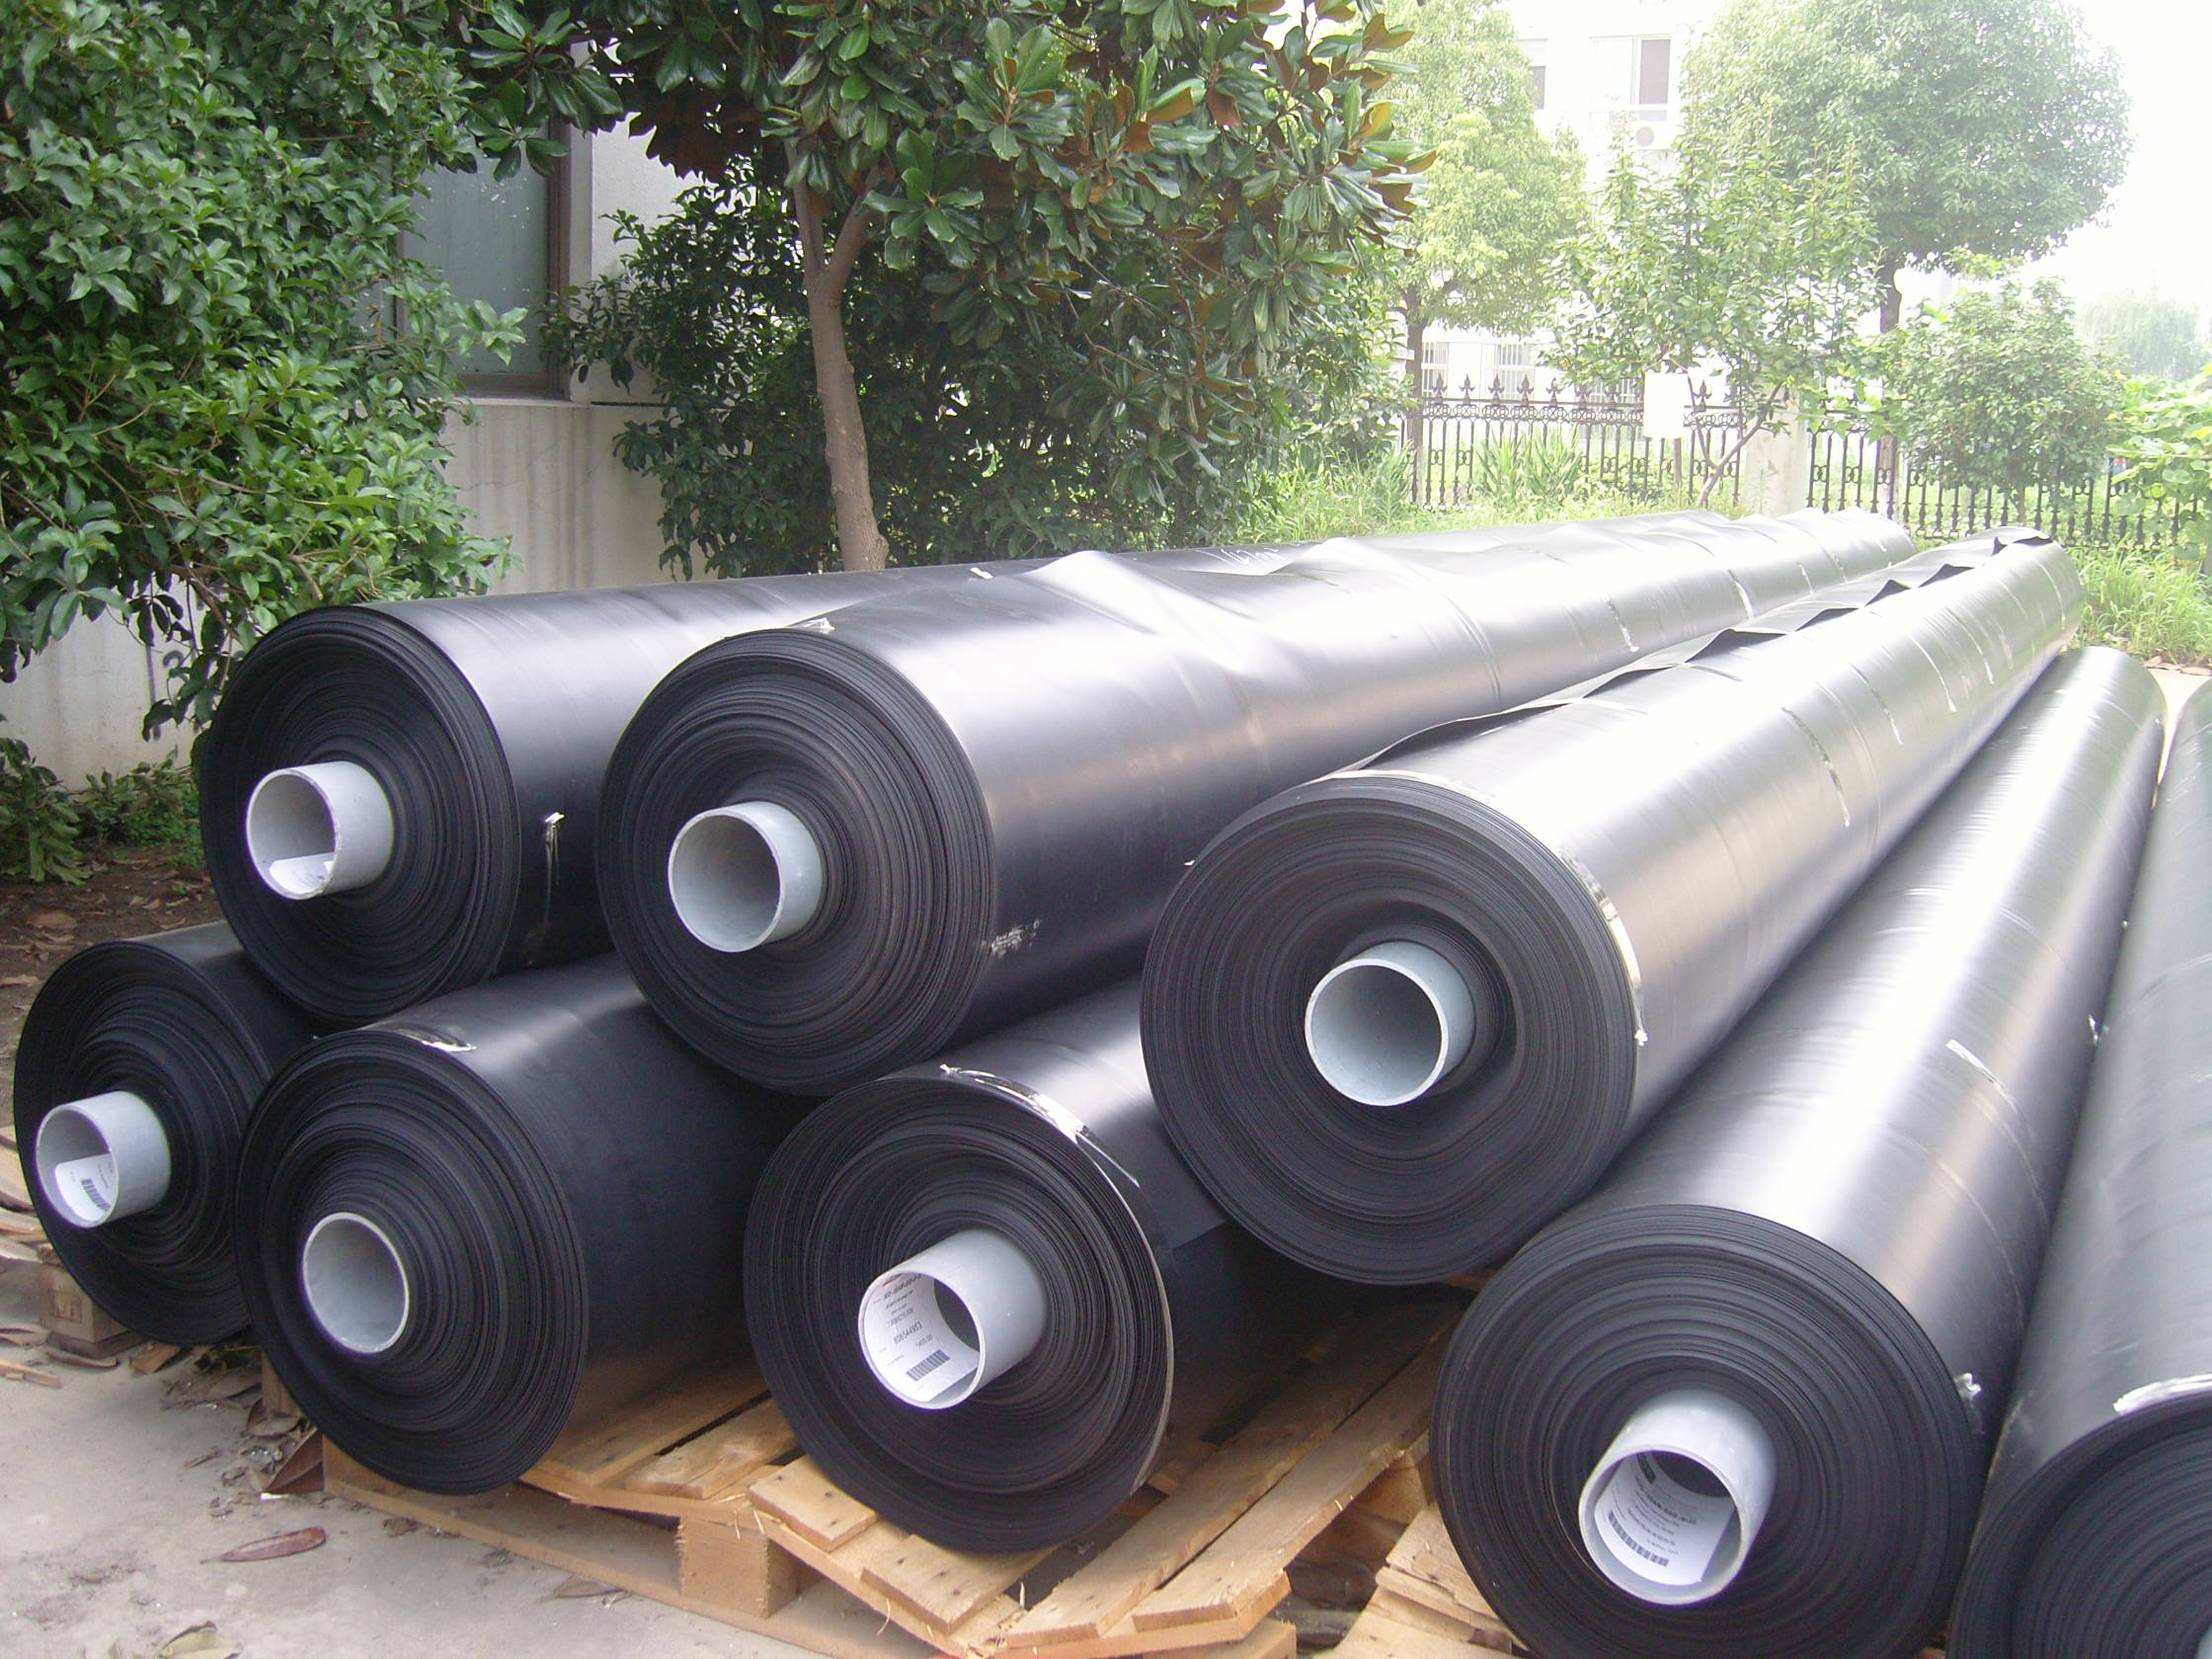 HDPE Geomembrane Waterproof Material